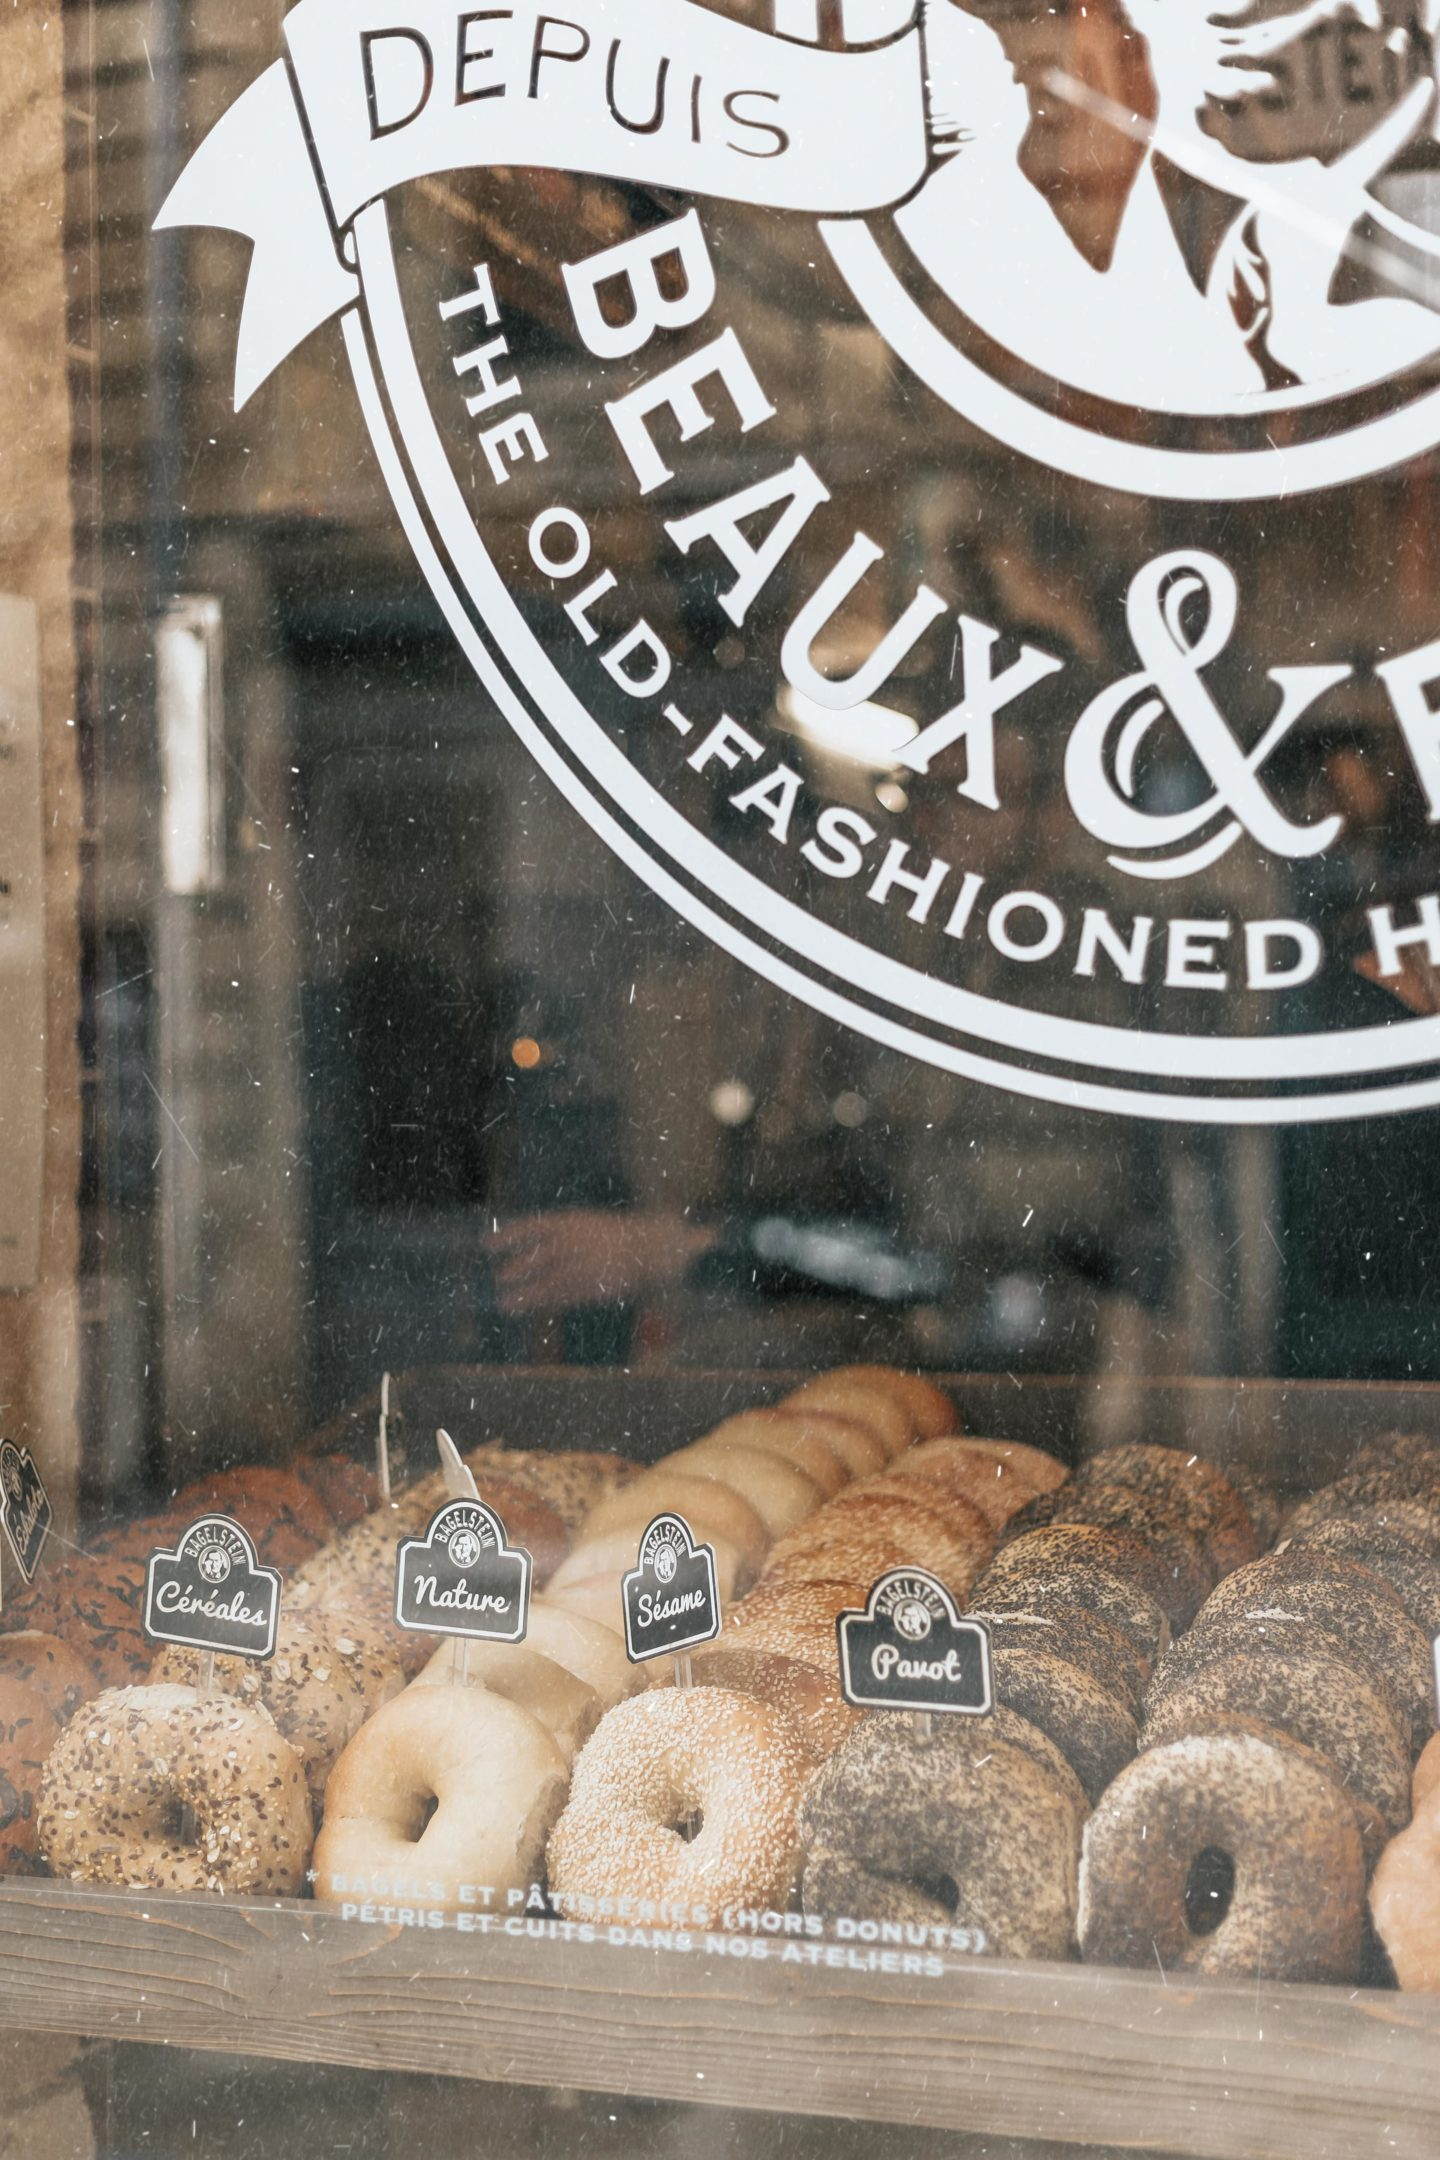 BAGEL, BAGELS, BAGELSTEIN, BORDEAUX, BLOG FOOD.